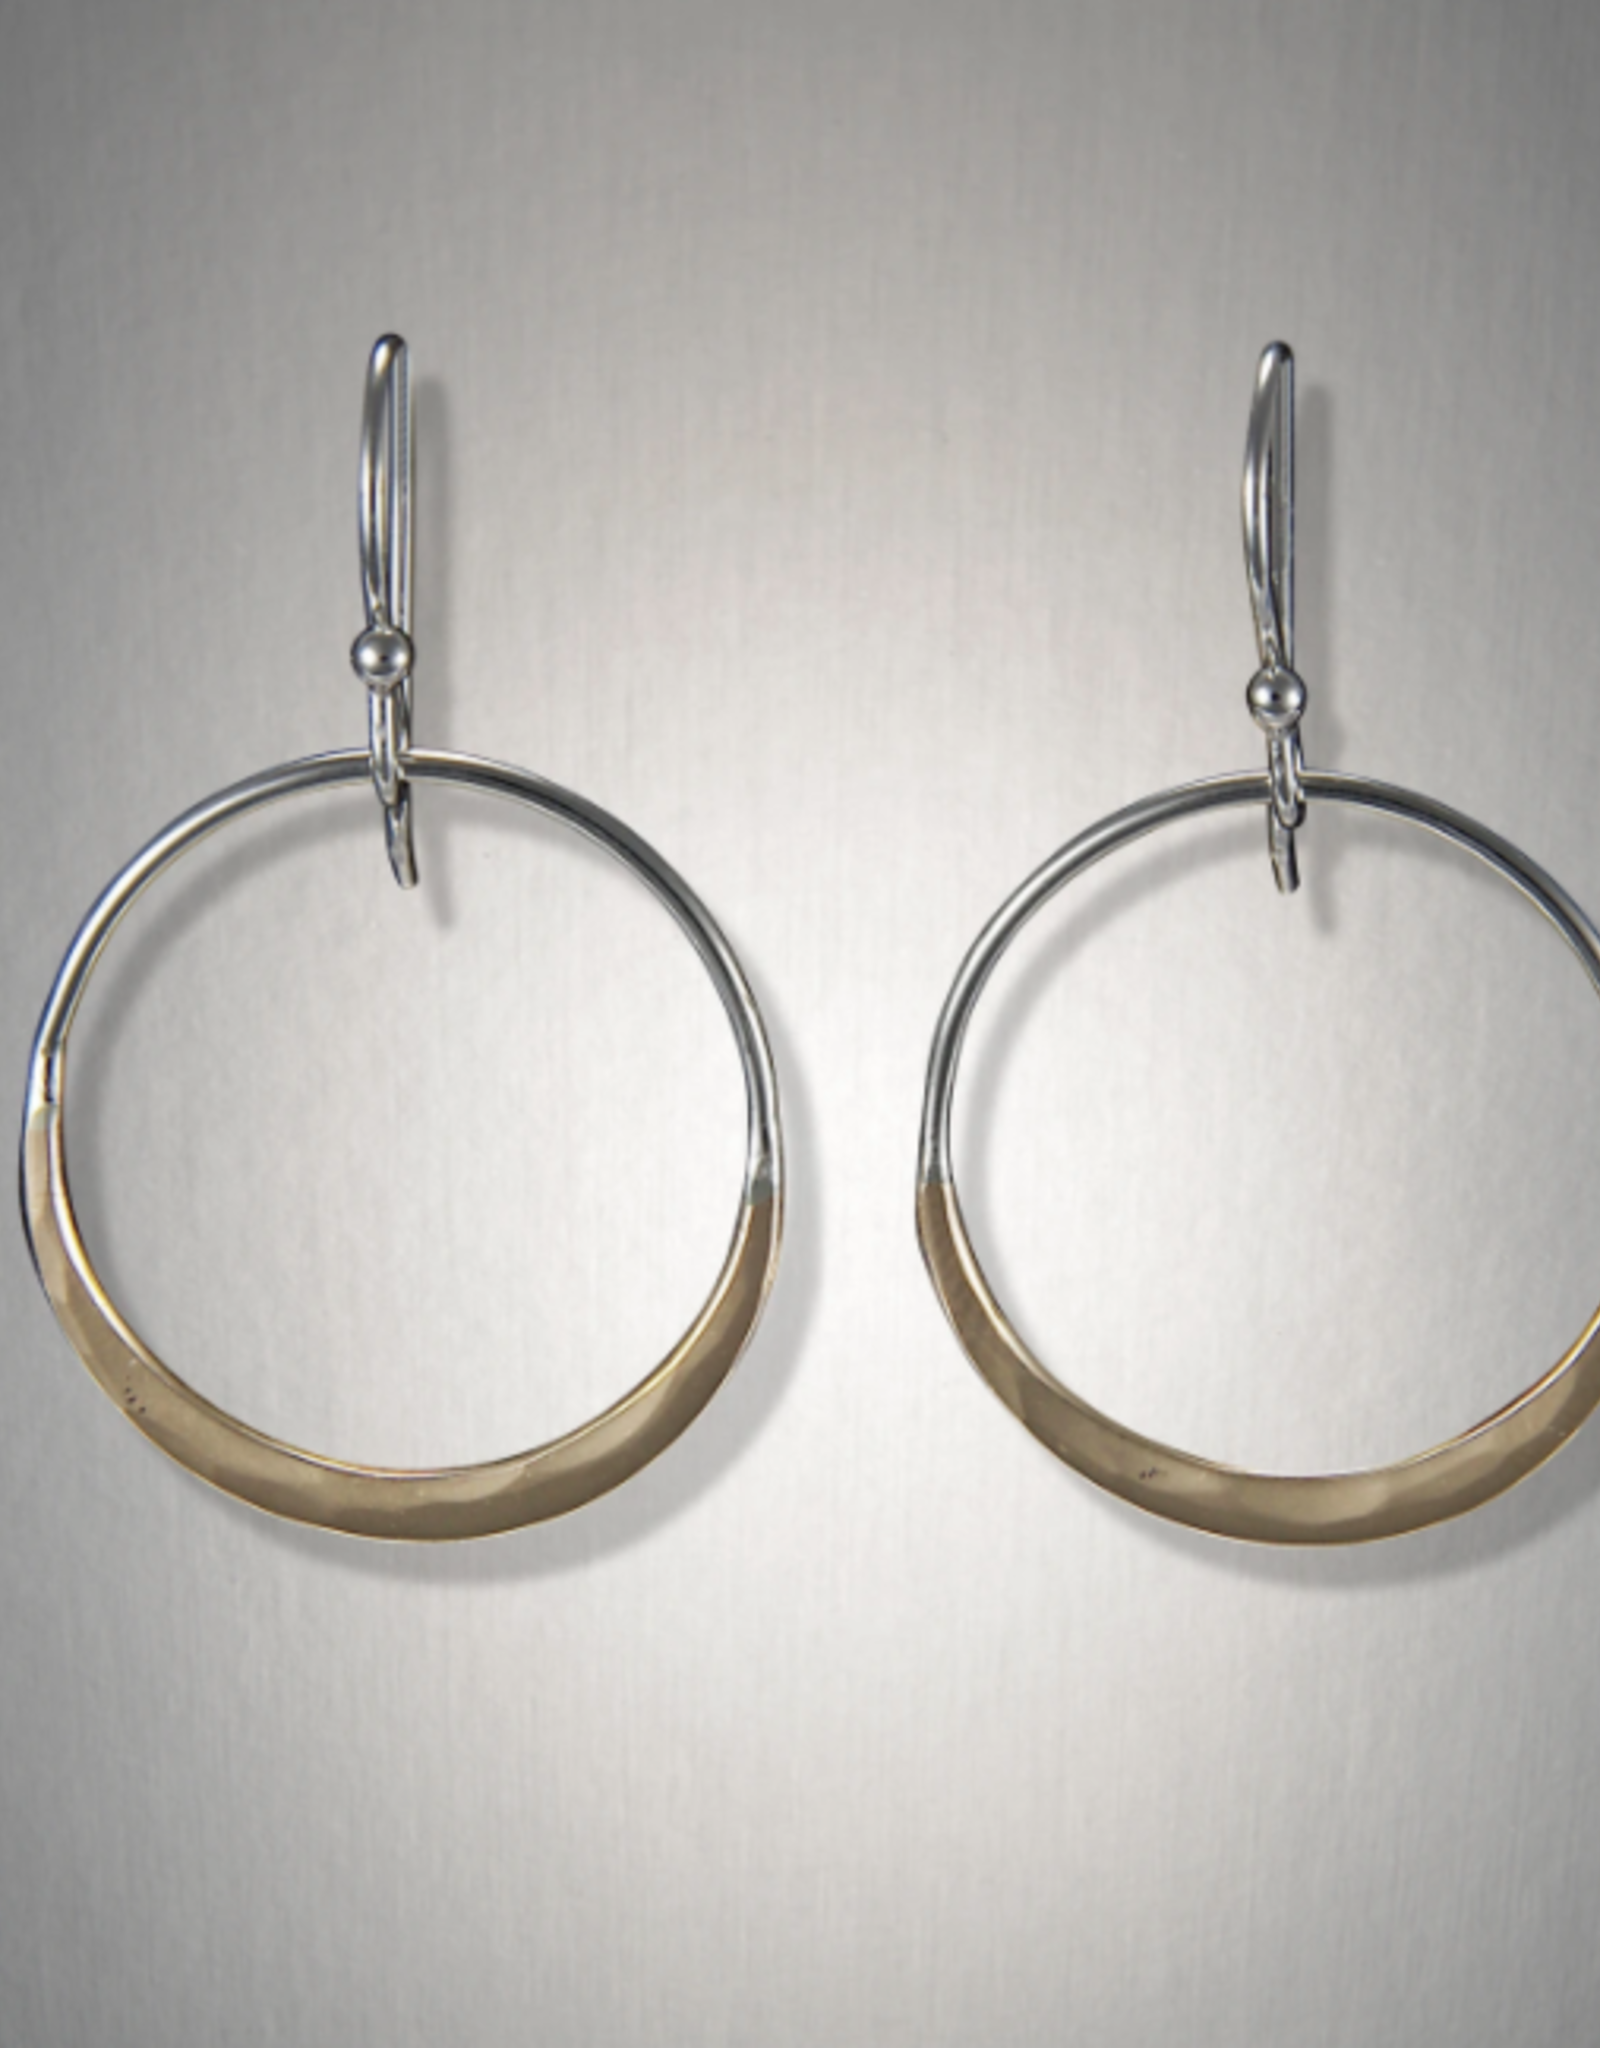 Peter James Jewelry Sterling Hoop w/ Gold Fill Arch Earrings, Small - Peter James Jewelry